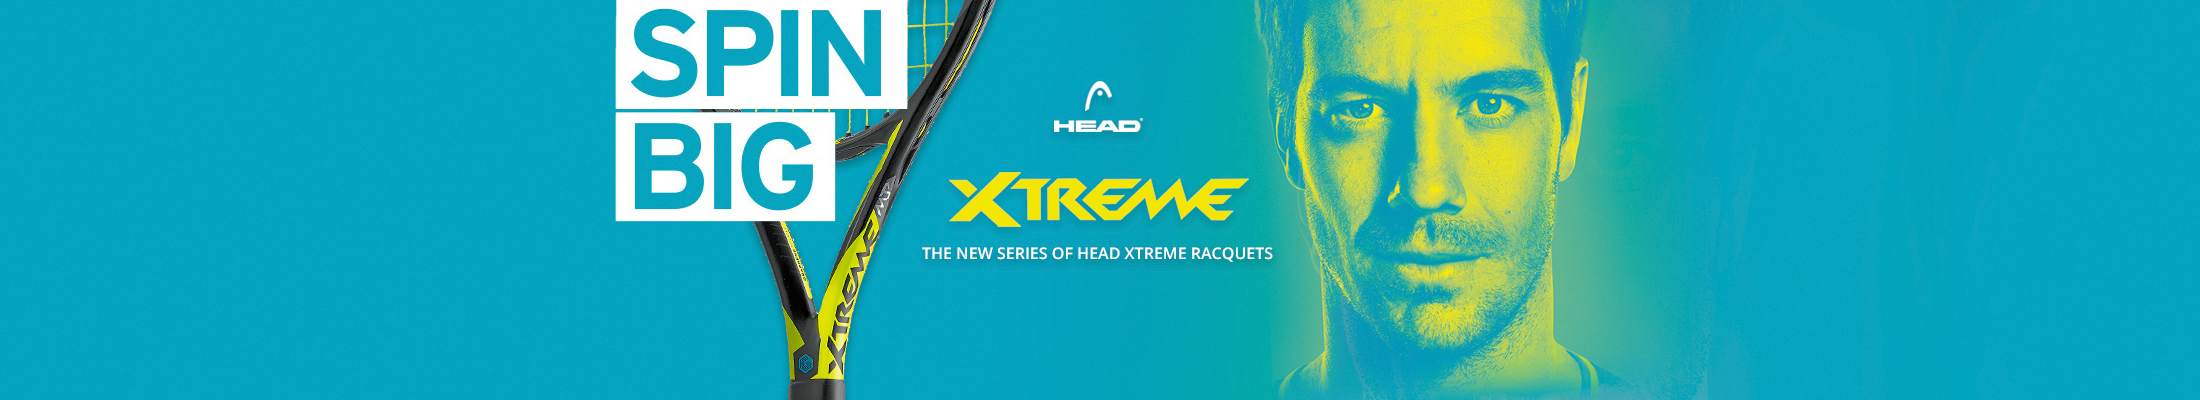 Head Xtreme racquets